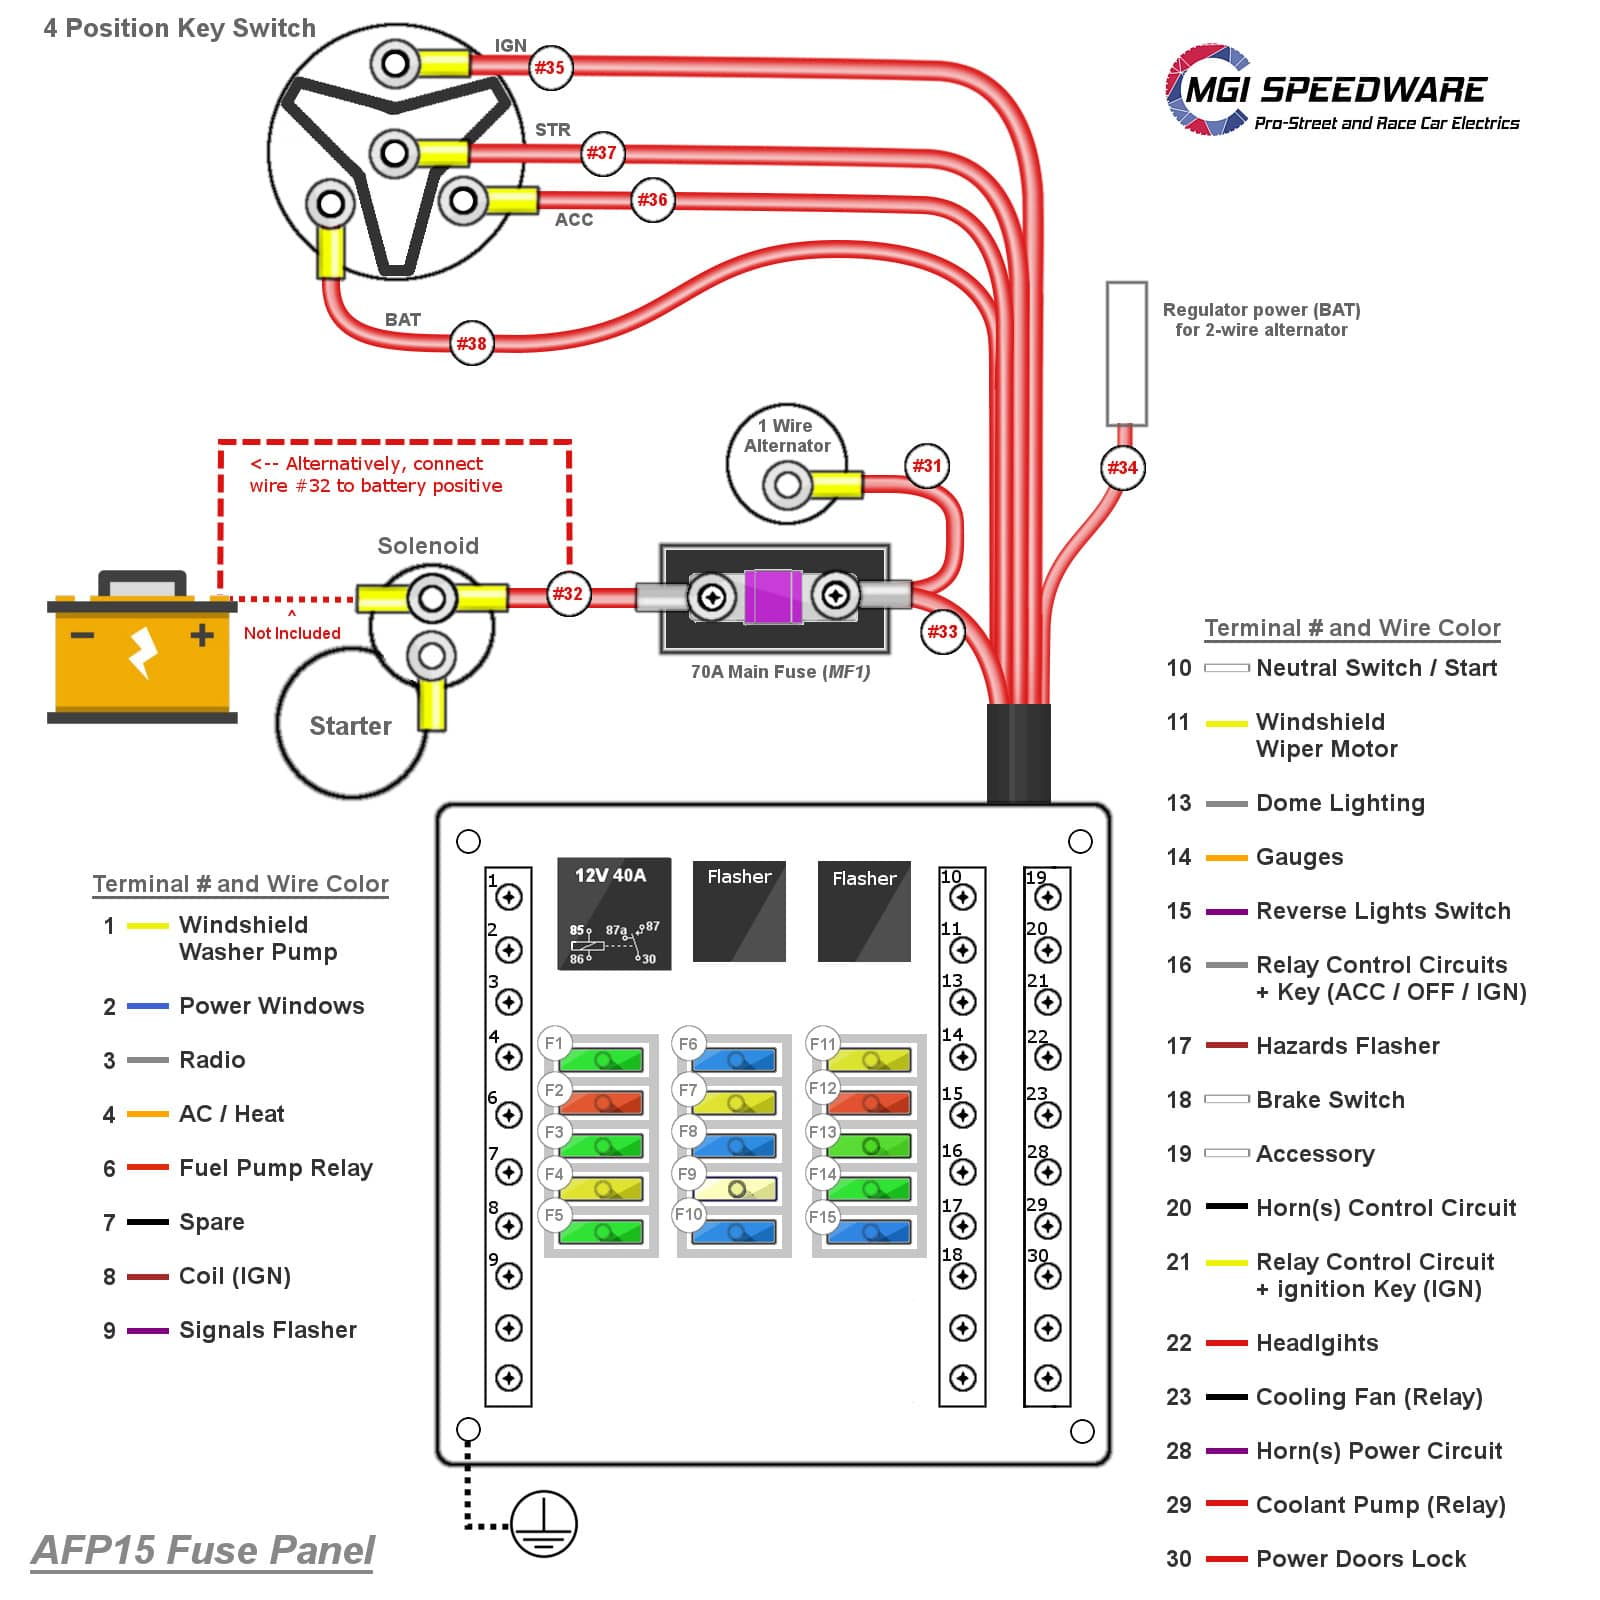 Wire Schemes Guides And Manuals 12v Automotive Electrical Control Mgi Speedware Afp15 Connection Wiring Drawings For An 15 Fuse Panel